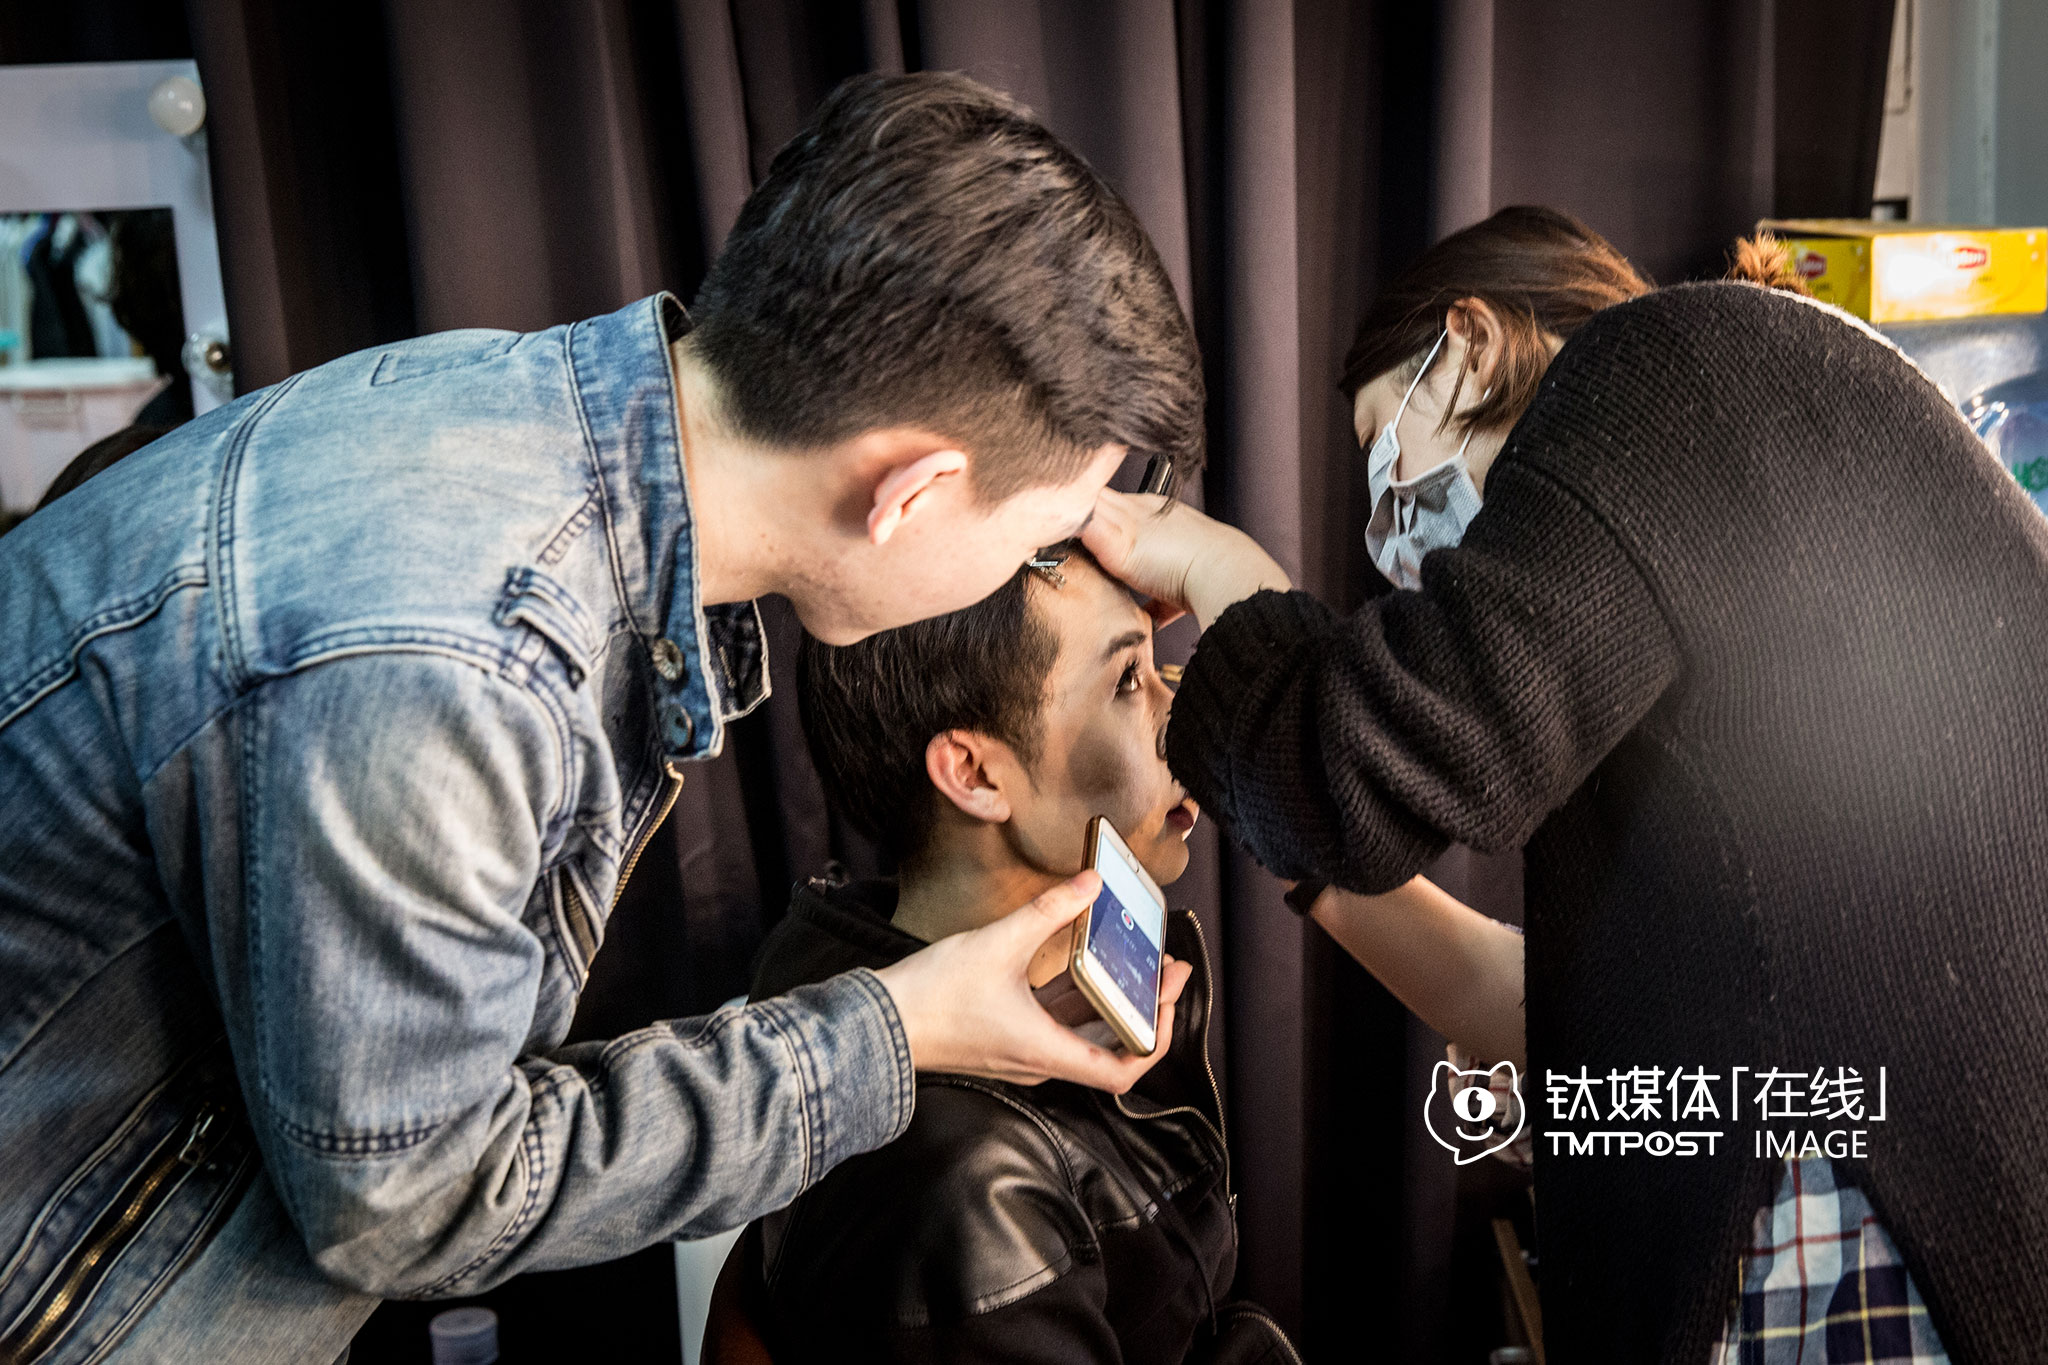 March 22nd, morning. During the makeup session before filming, they cast had an interview on the official account Wanxingren on WeChat, answering some selected questions from WeChat users.